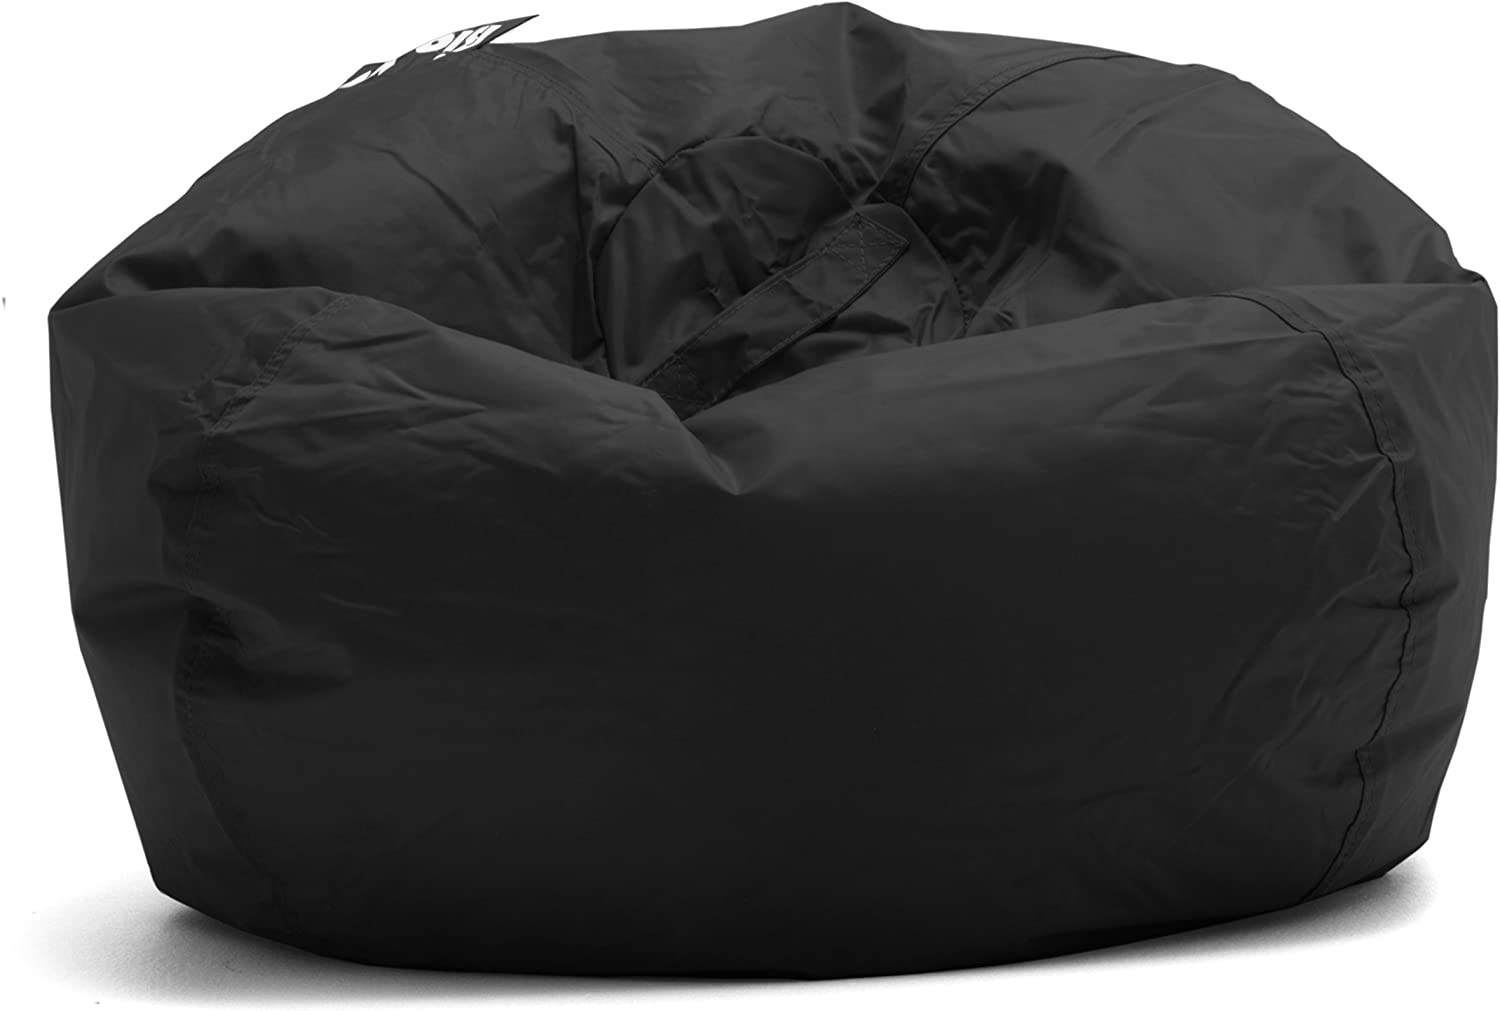 Top 7 Best Luxury Bean Bag Chairs for Adults [Top Picks 2021] 1